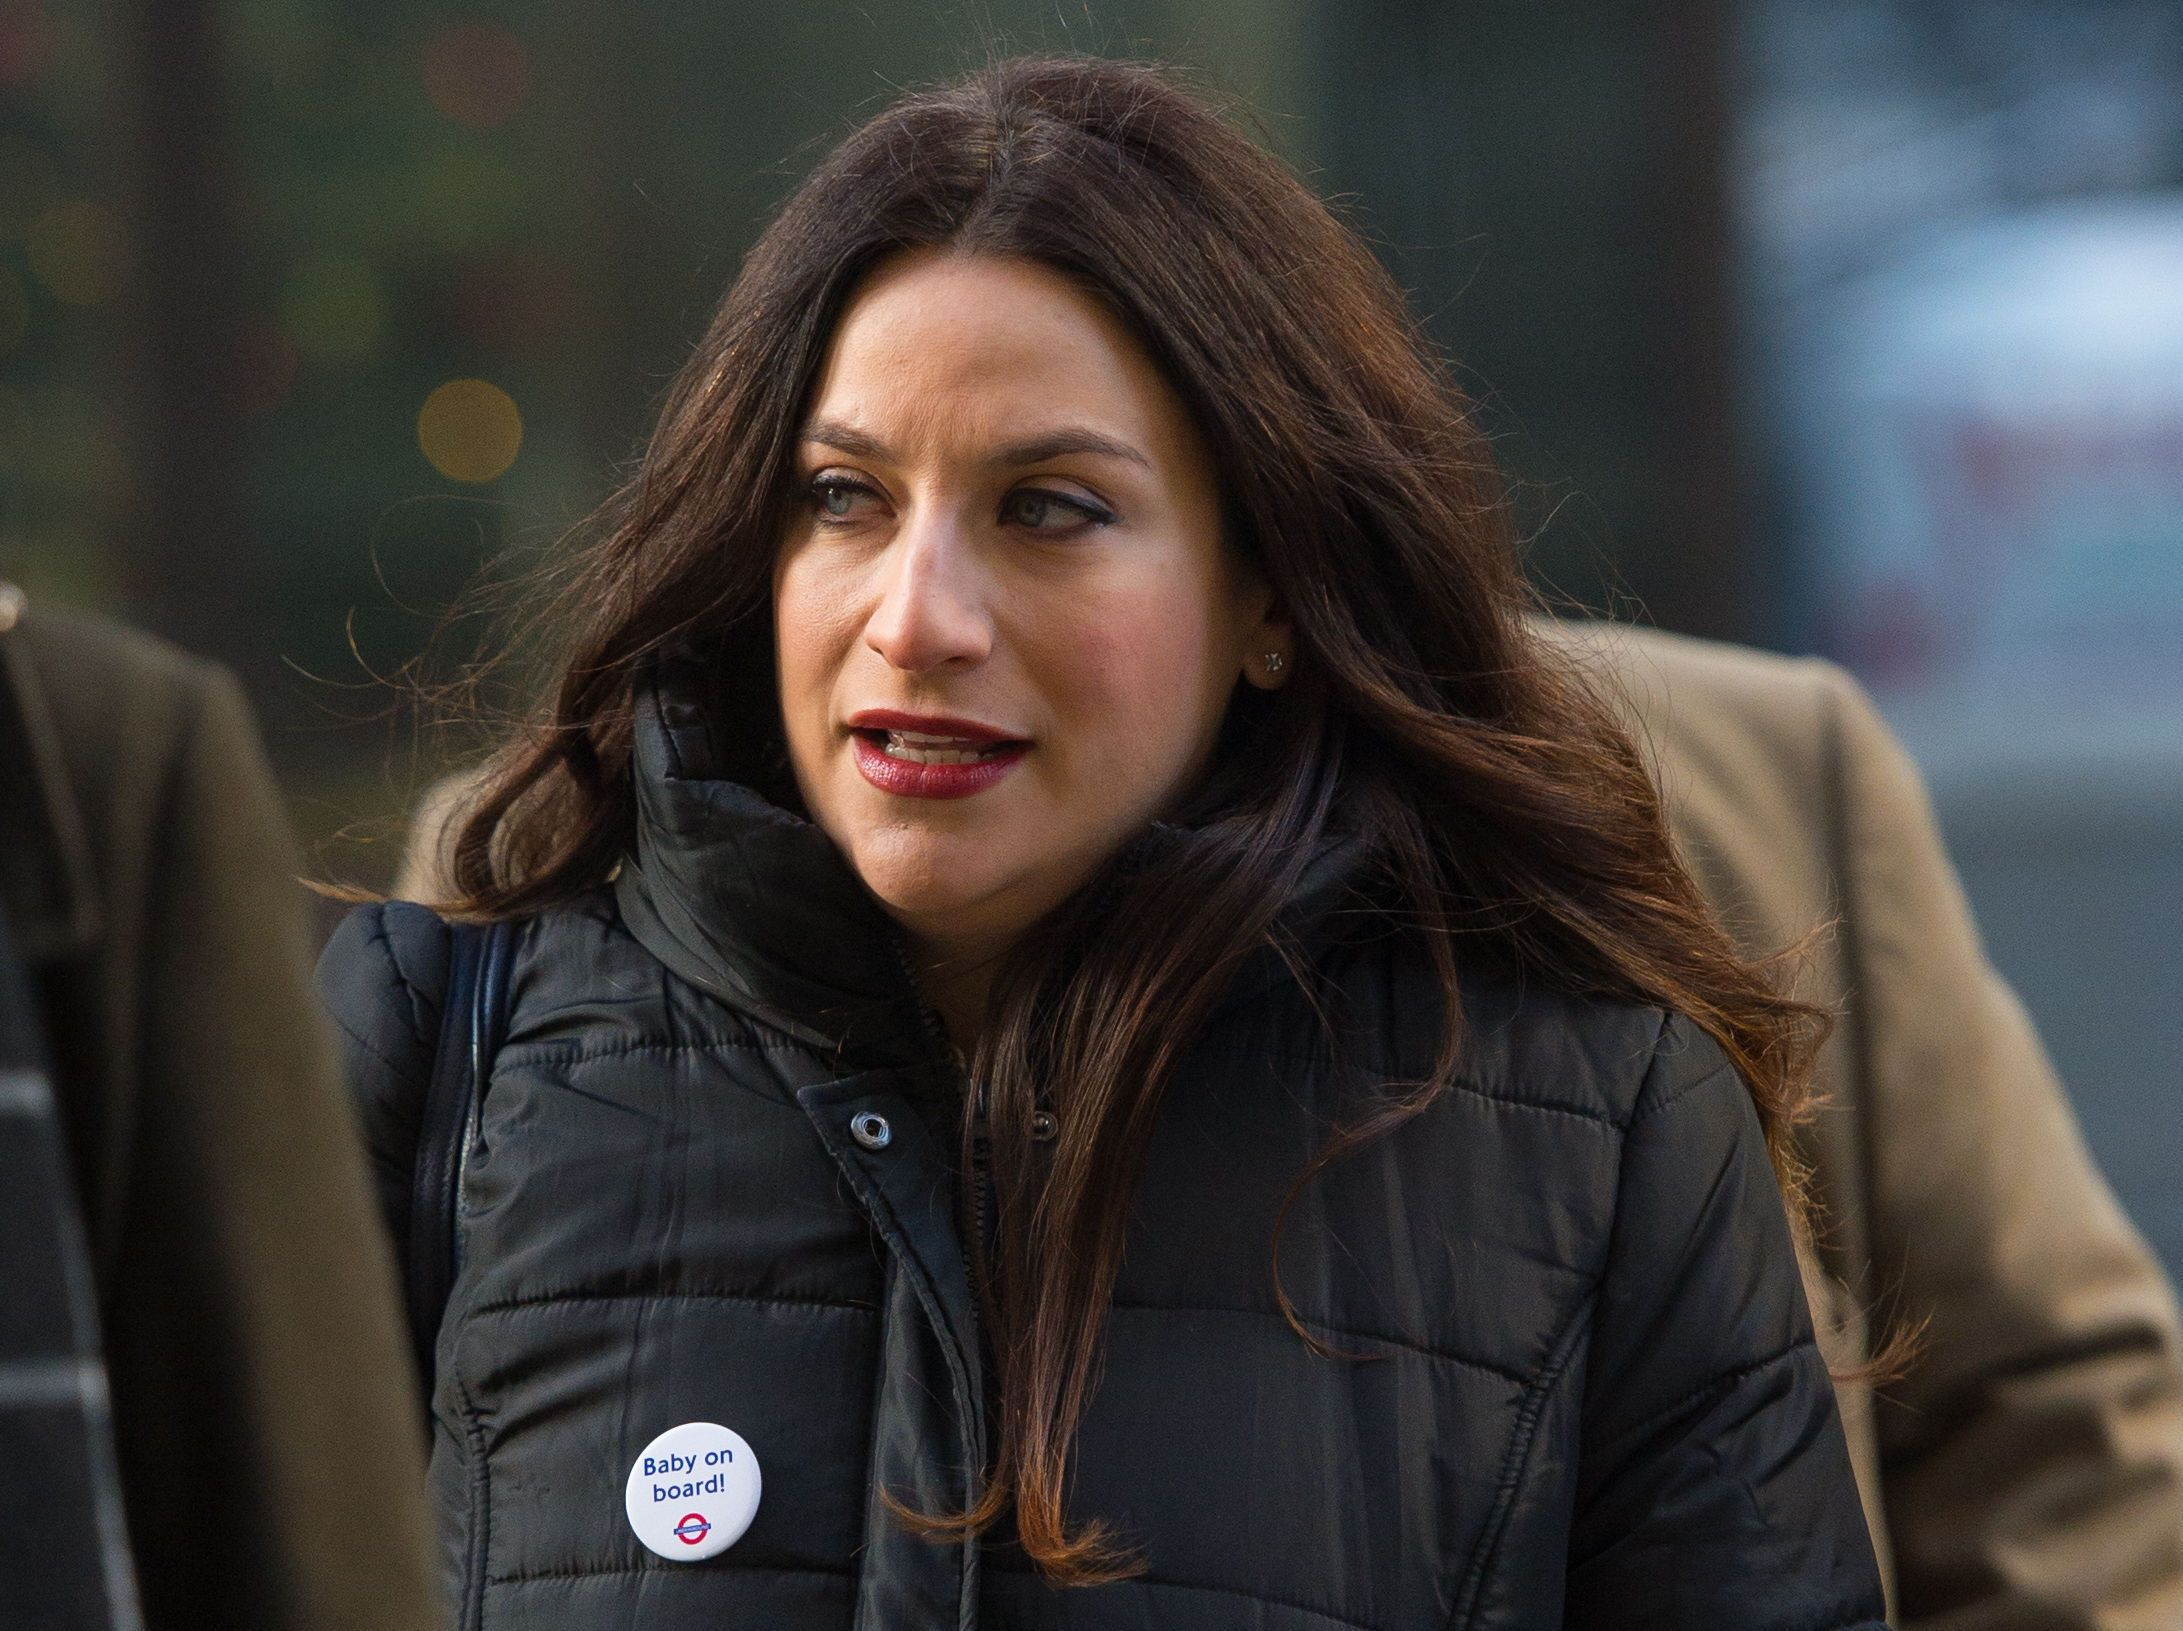 Labour MP Luciana Berger washarassed online by a man who was later